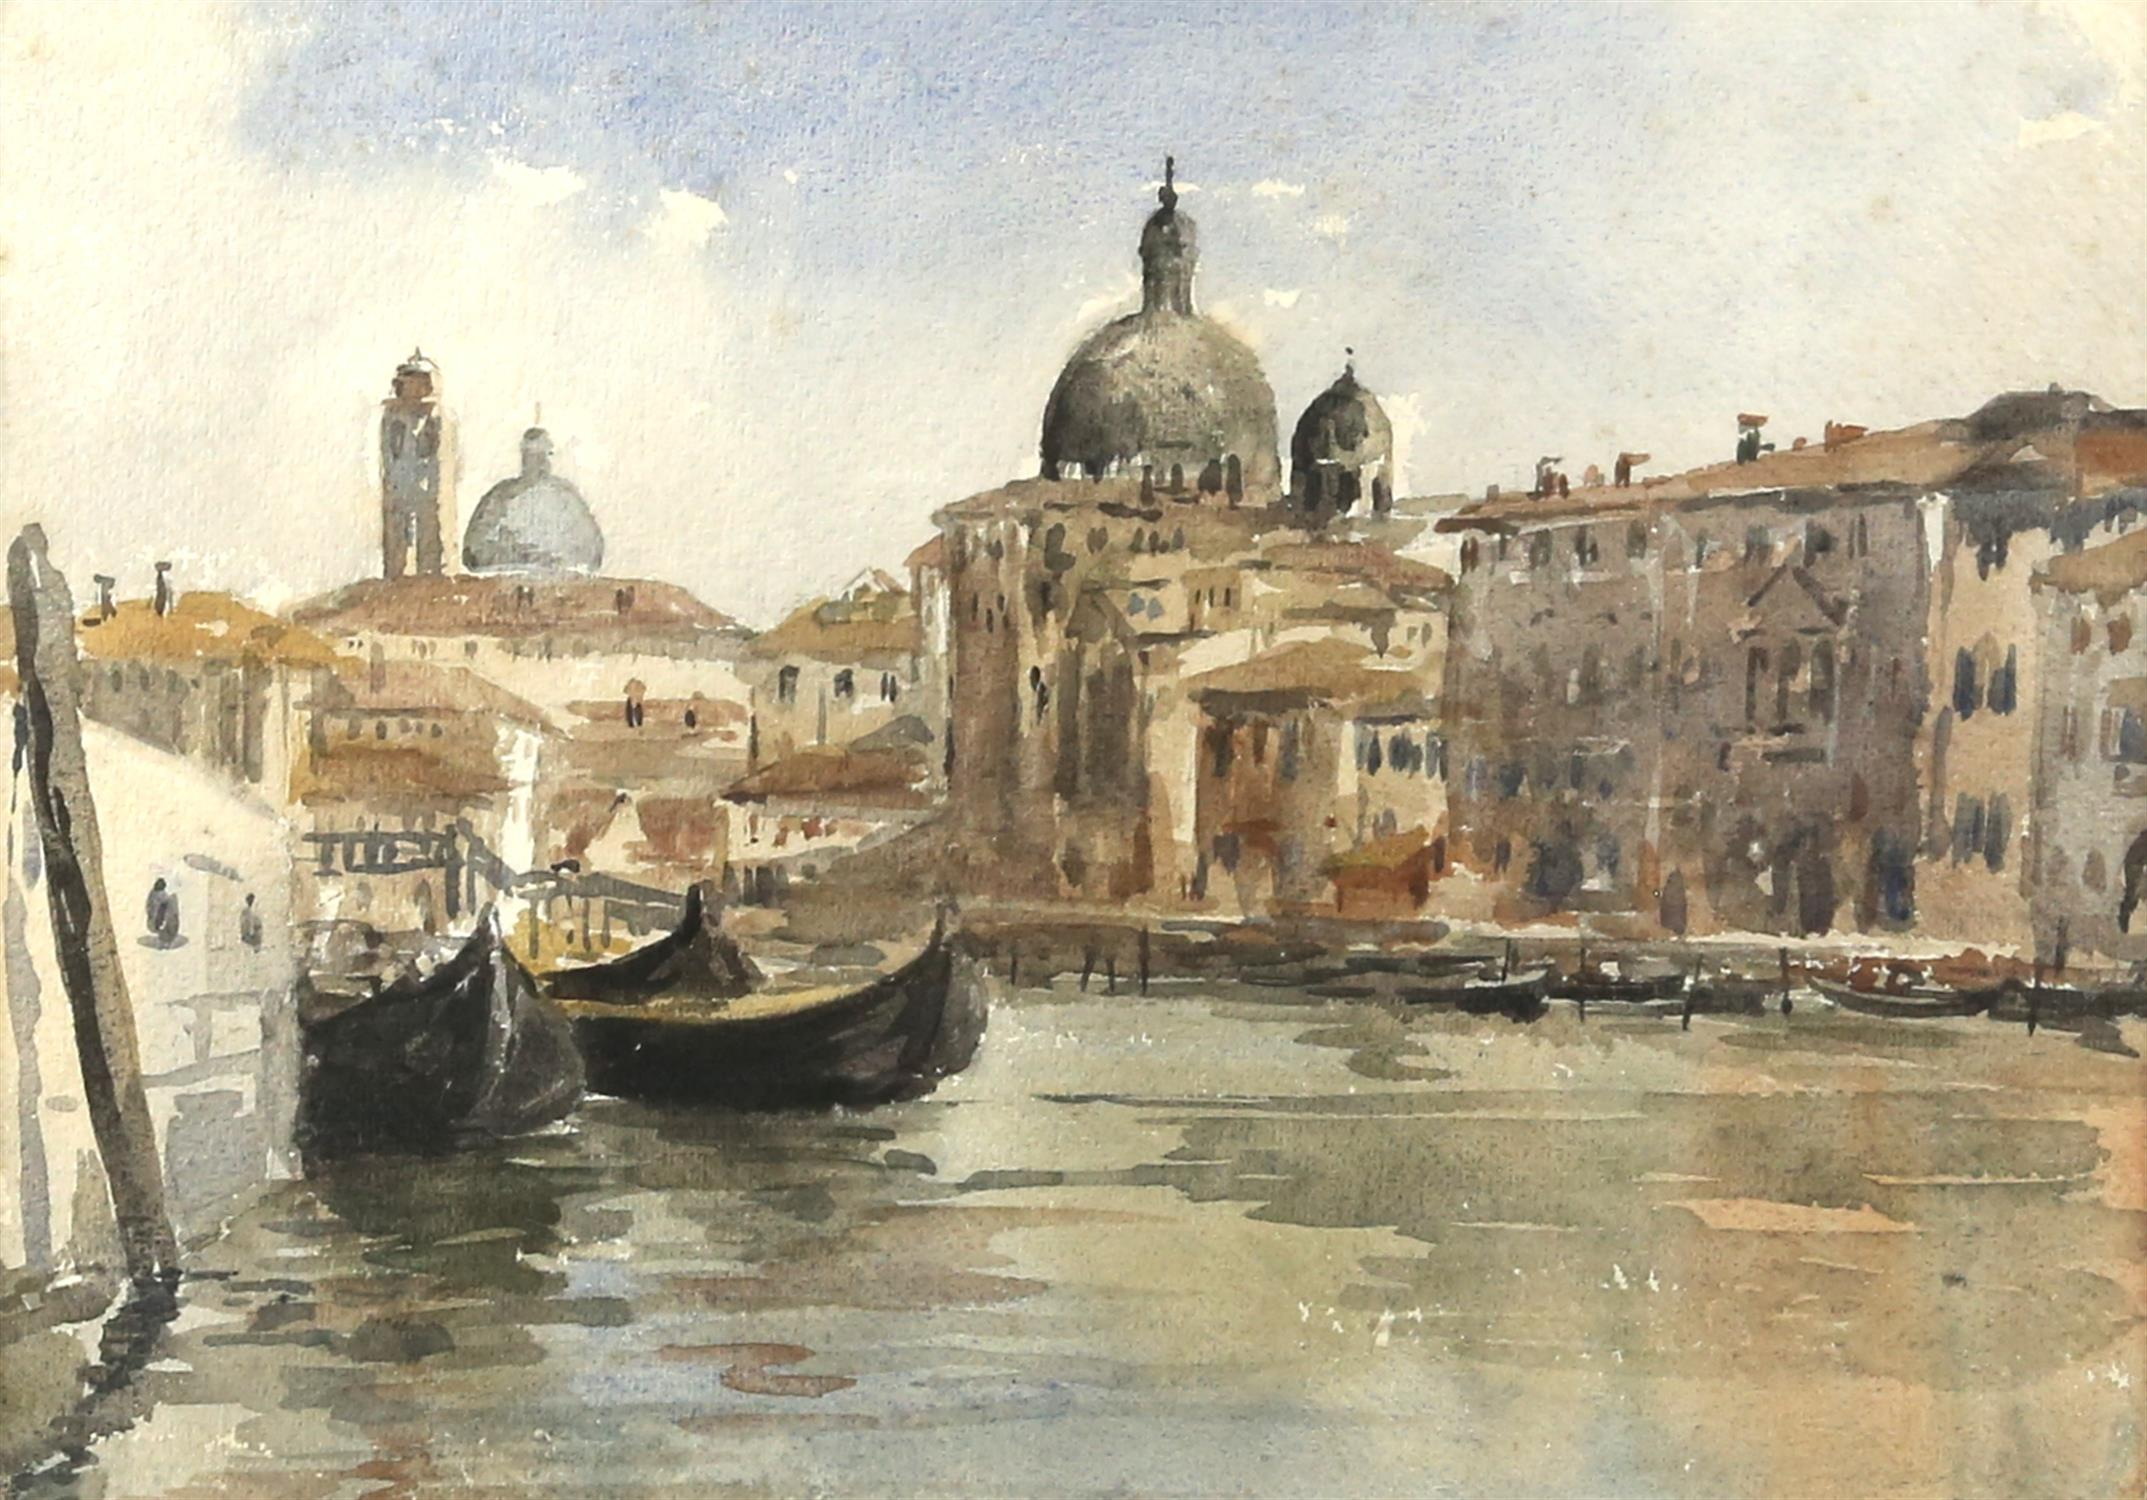 Attributed to Sir Charles W. D'Oyly (British, 1781-1845). The Grand Canal, Venice. Watercolour.